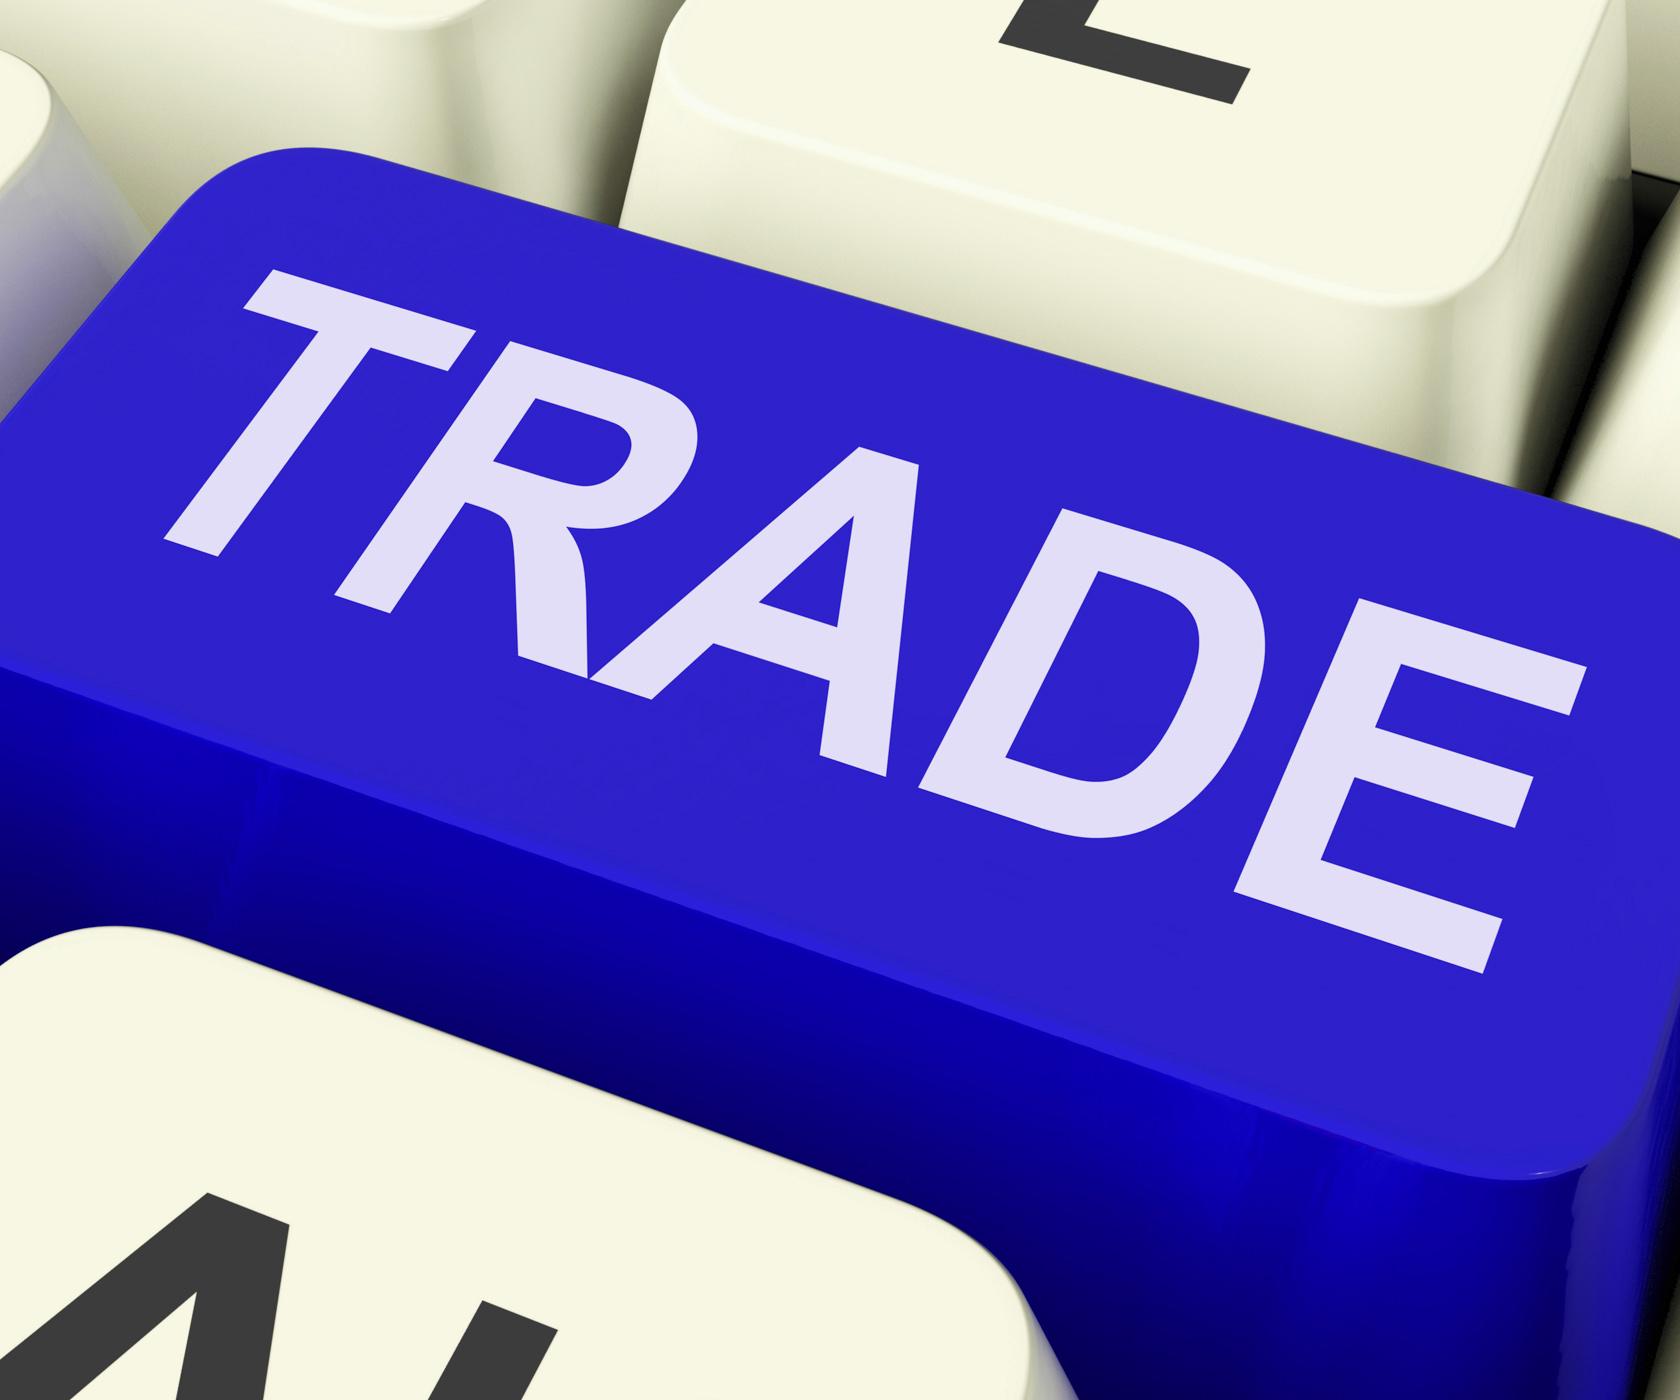 Trade key shows online buying and selling photo